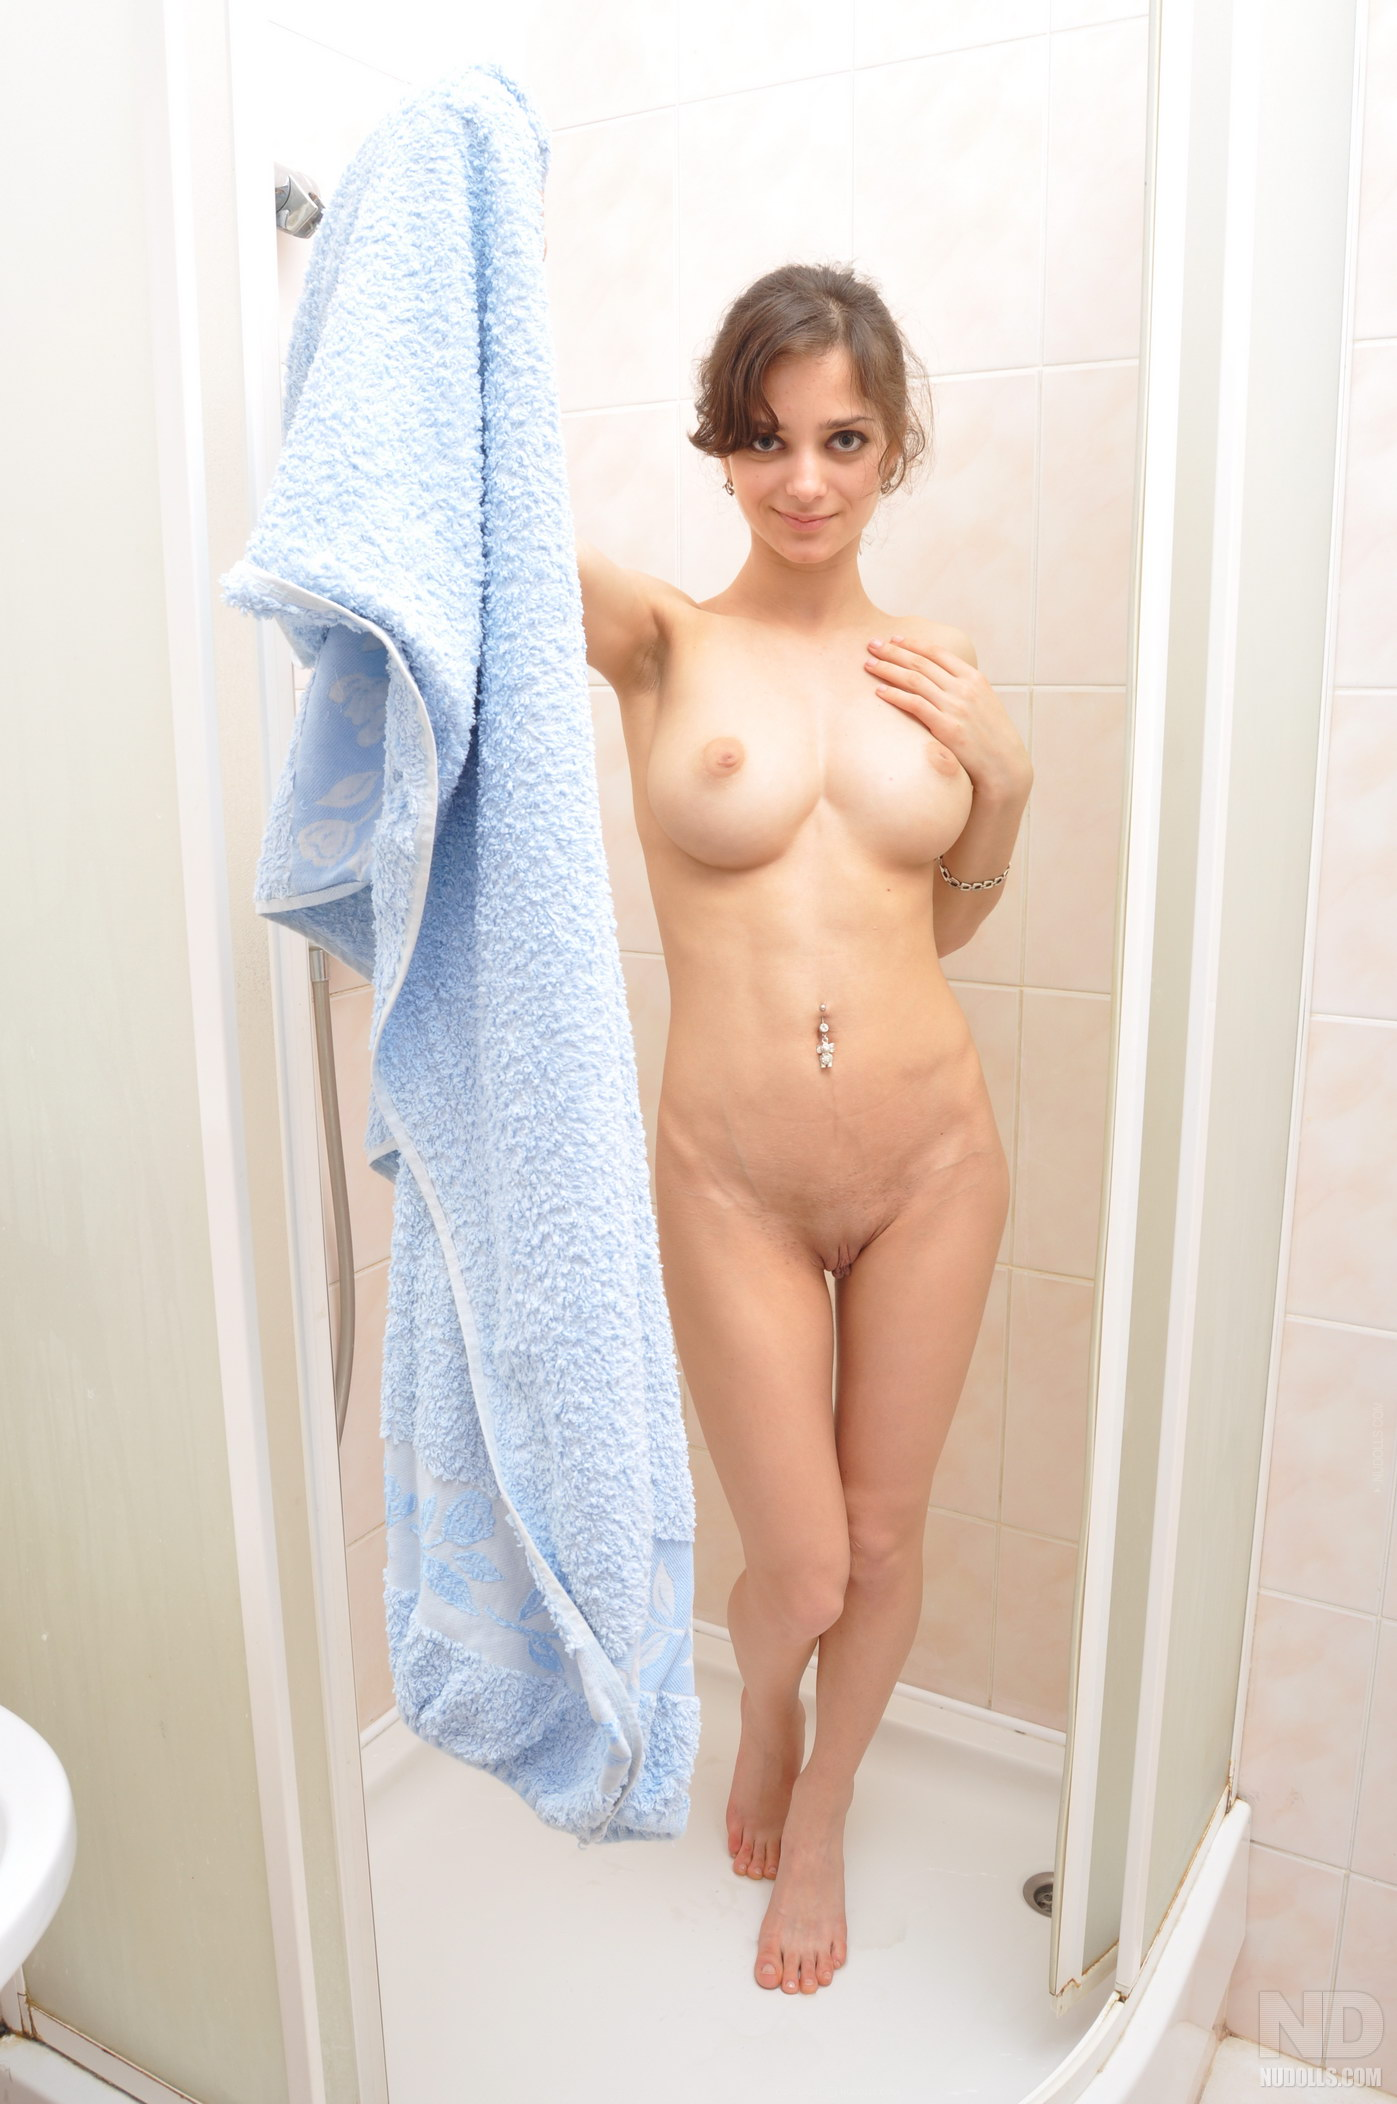 Bath towel sex galleries